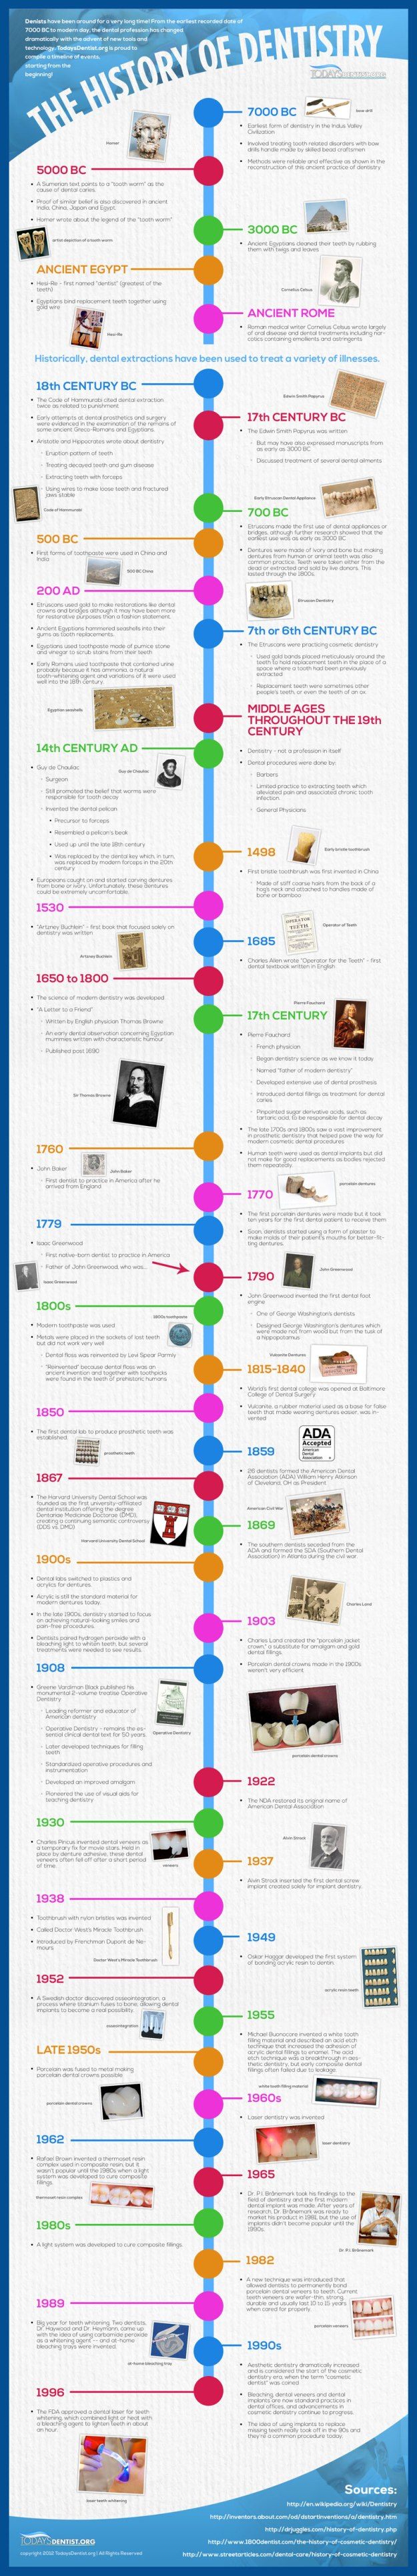 history-of-dentistry